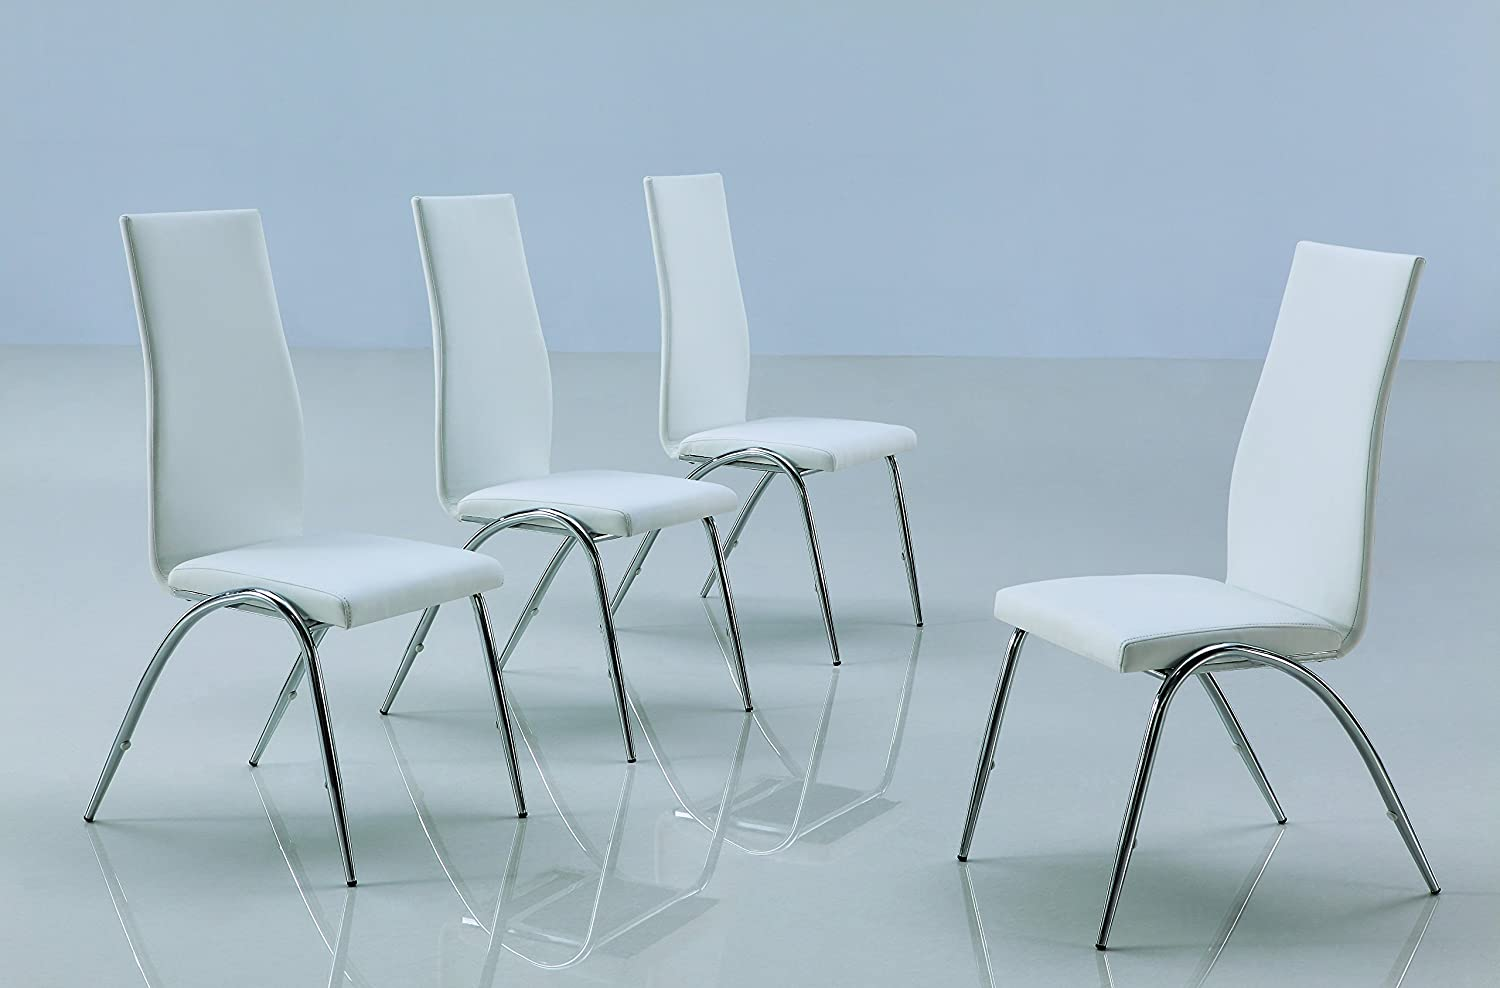 Modern Line Furniture F73Wx4 Contemporary Dining Chair for Restaurant/Bar/Nightclub/Hospitality Furniture, White (Pack of 4)